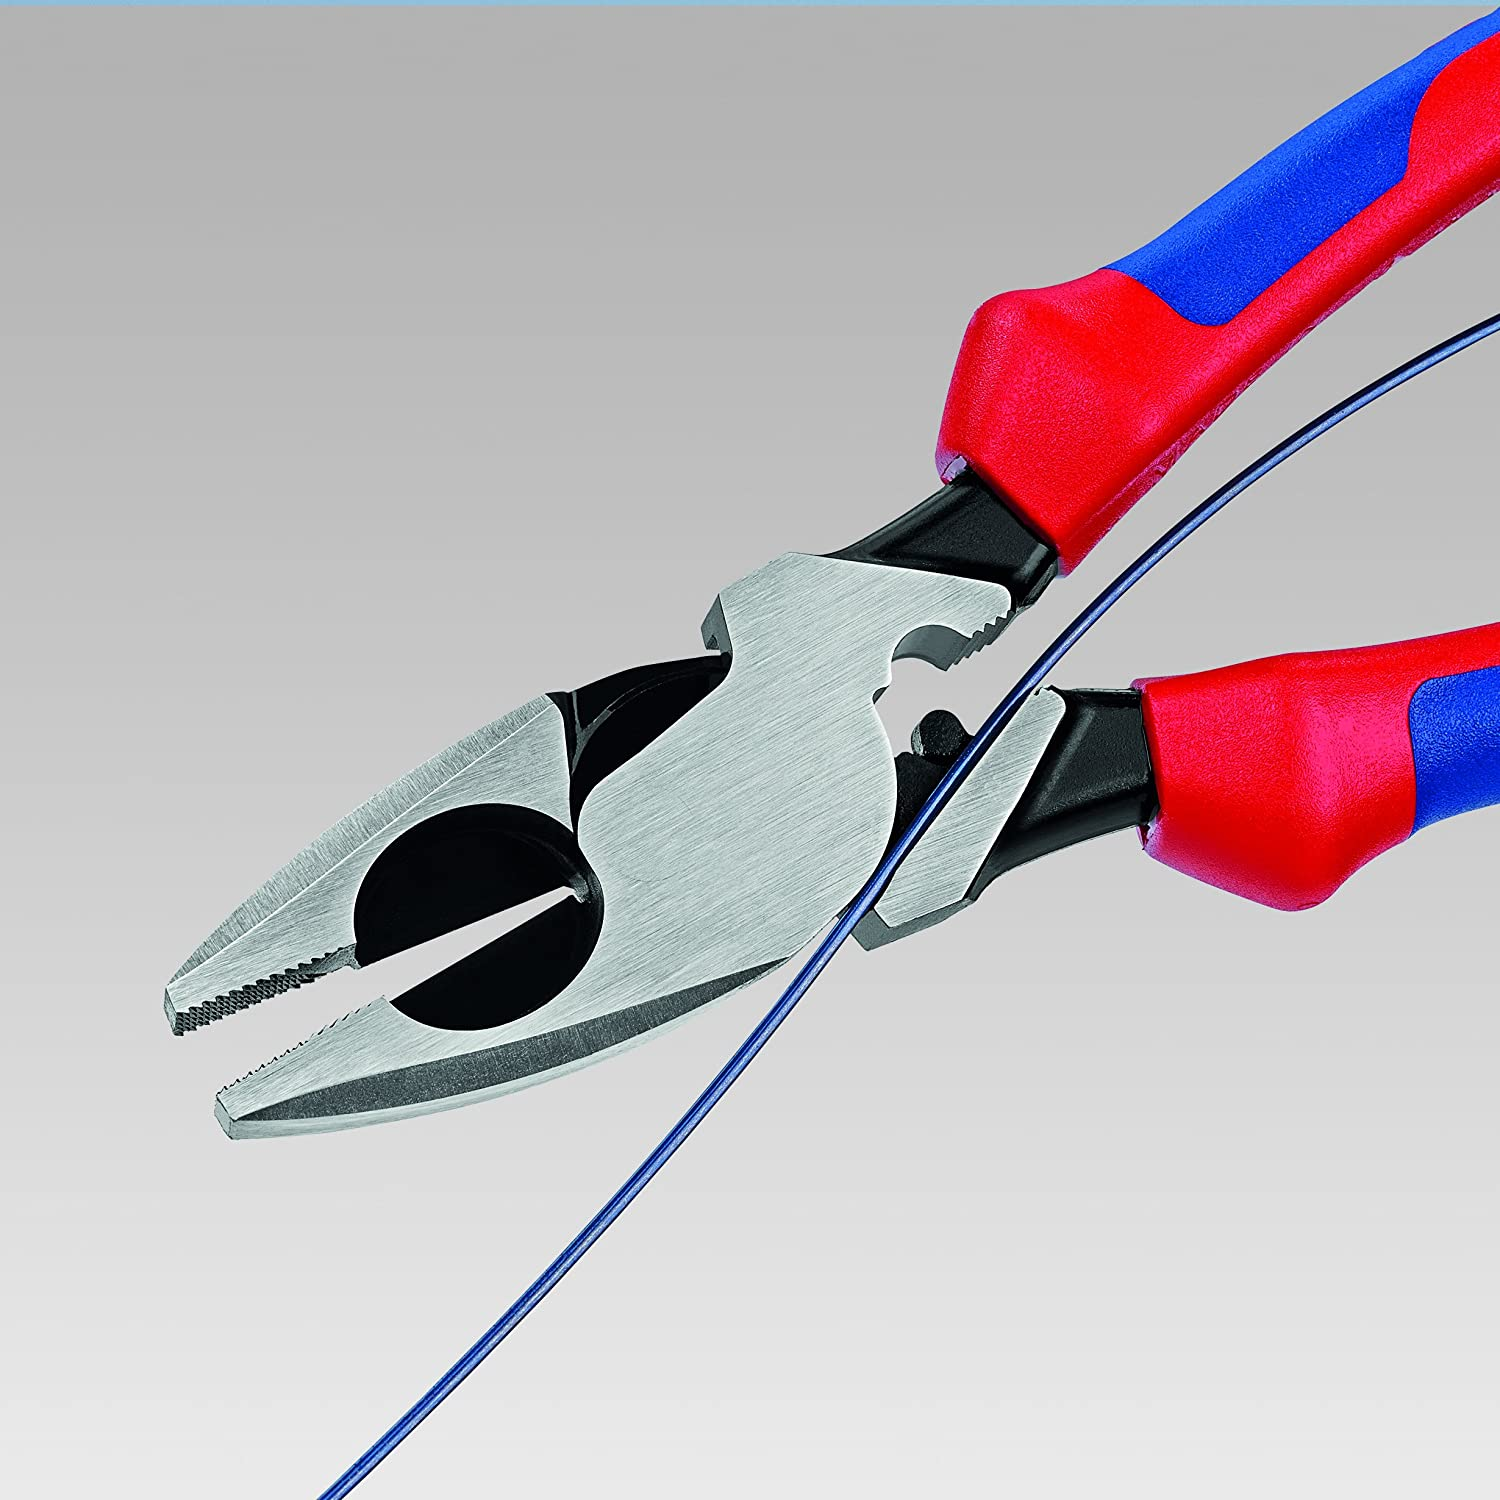 Knipex 09 12 240 SBA 9.5-Inch Ultra-High Leverage Lineman\'s Pliers ...